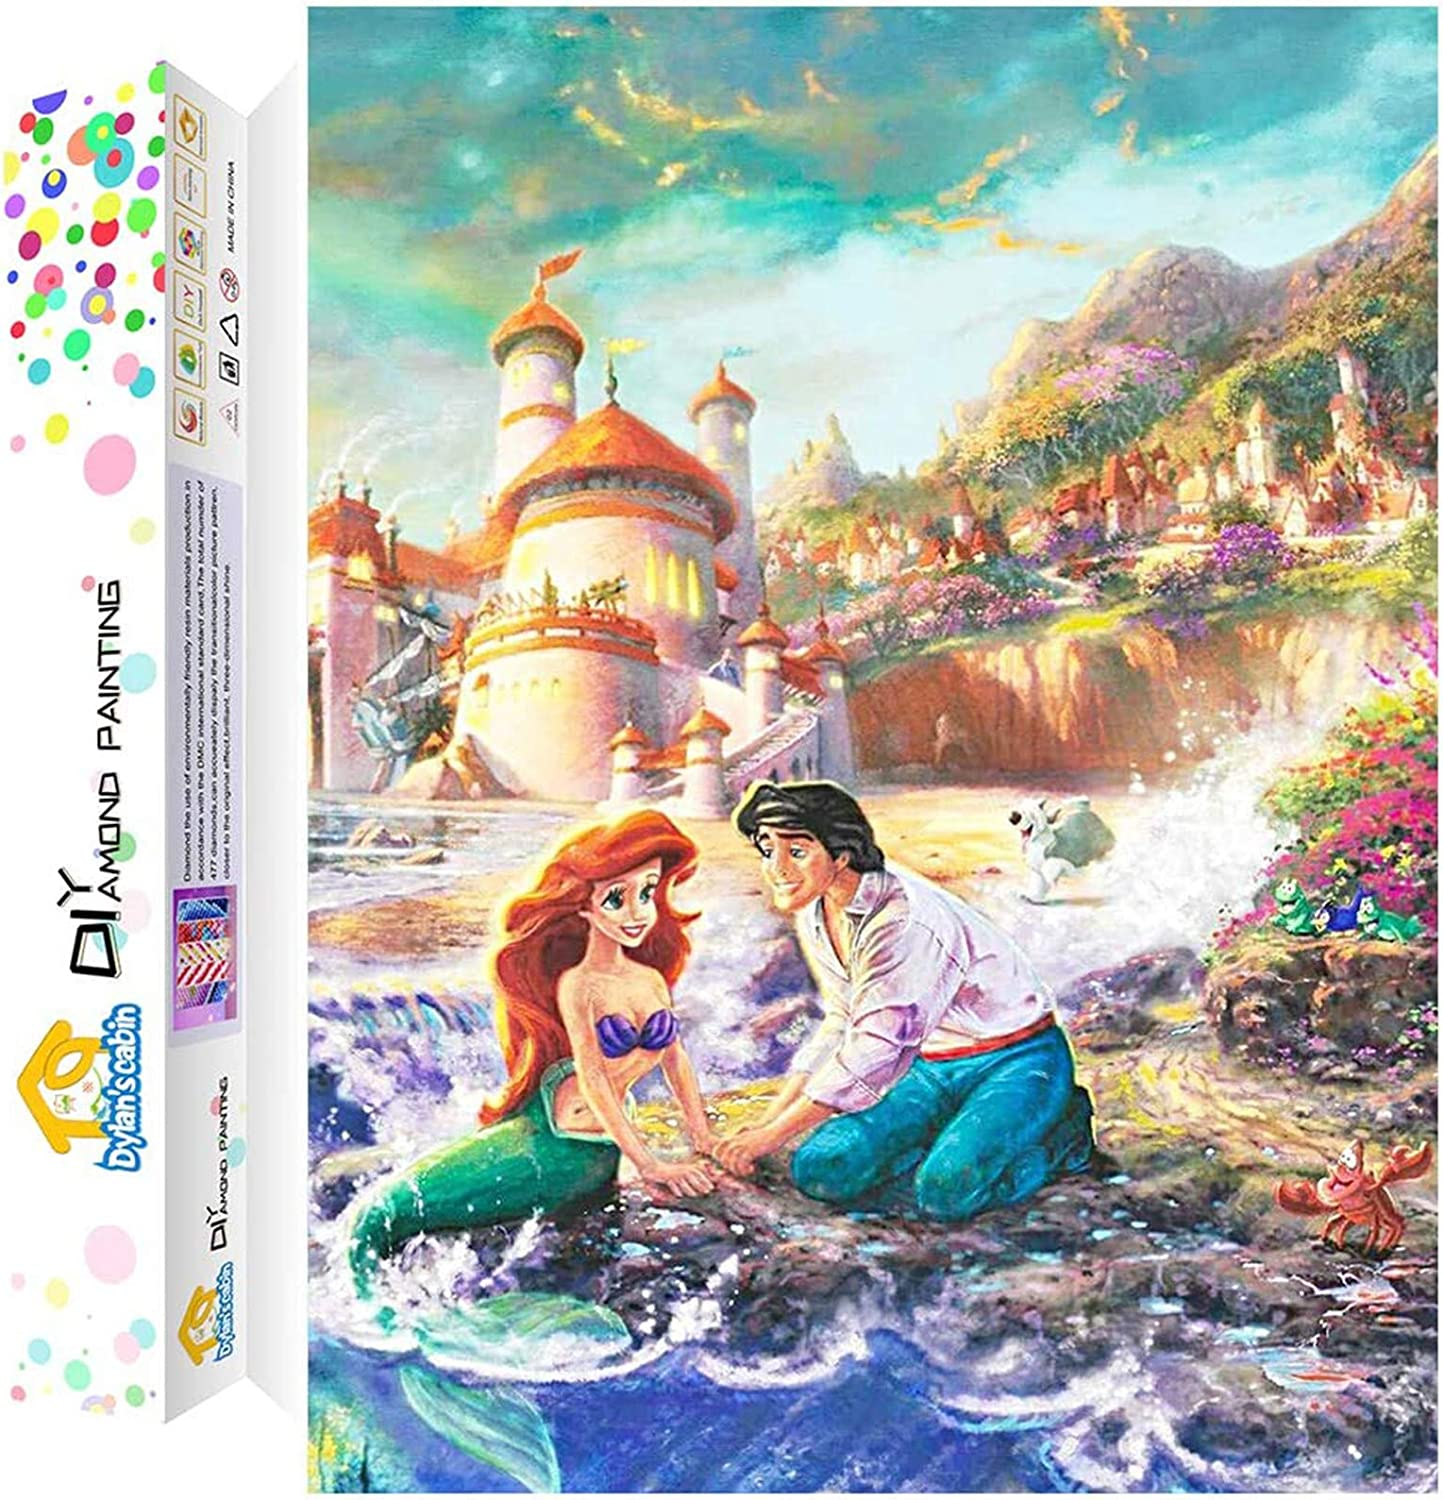 Dylan/'s Cabin DIY 5D Diamond Painting Kits for Adults,Full Drill Embroidery Paint with Diamond for Home Wall Decor(Princess//12x16inch